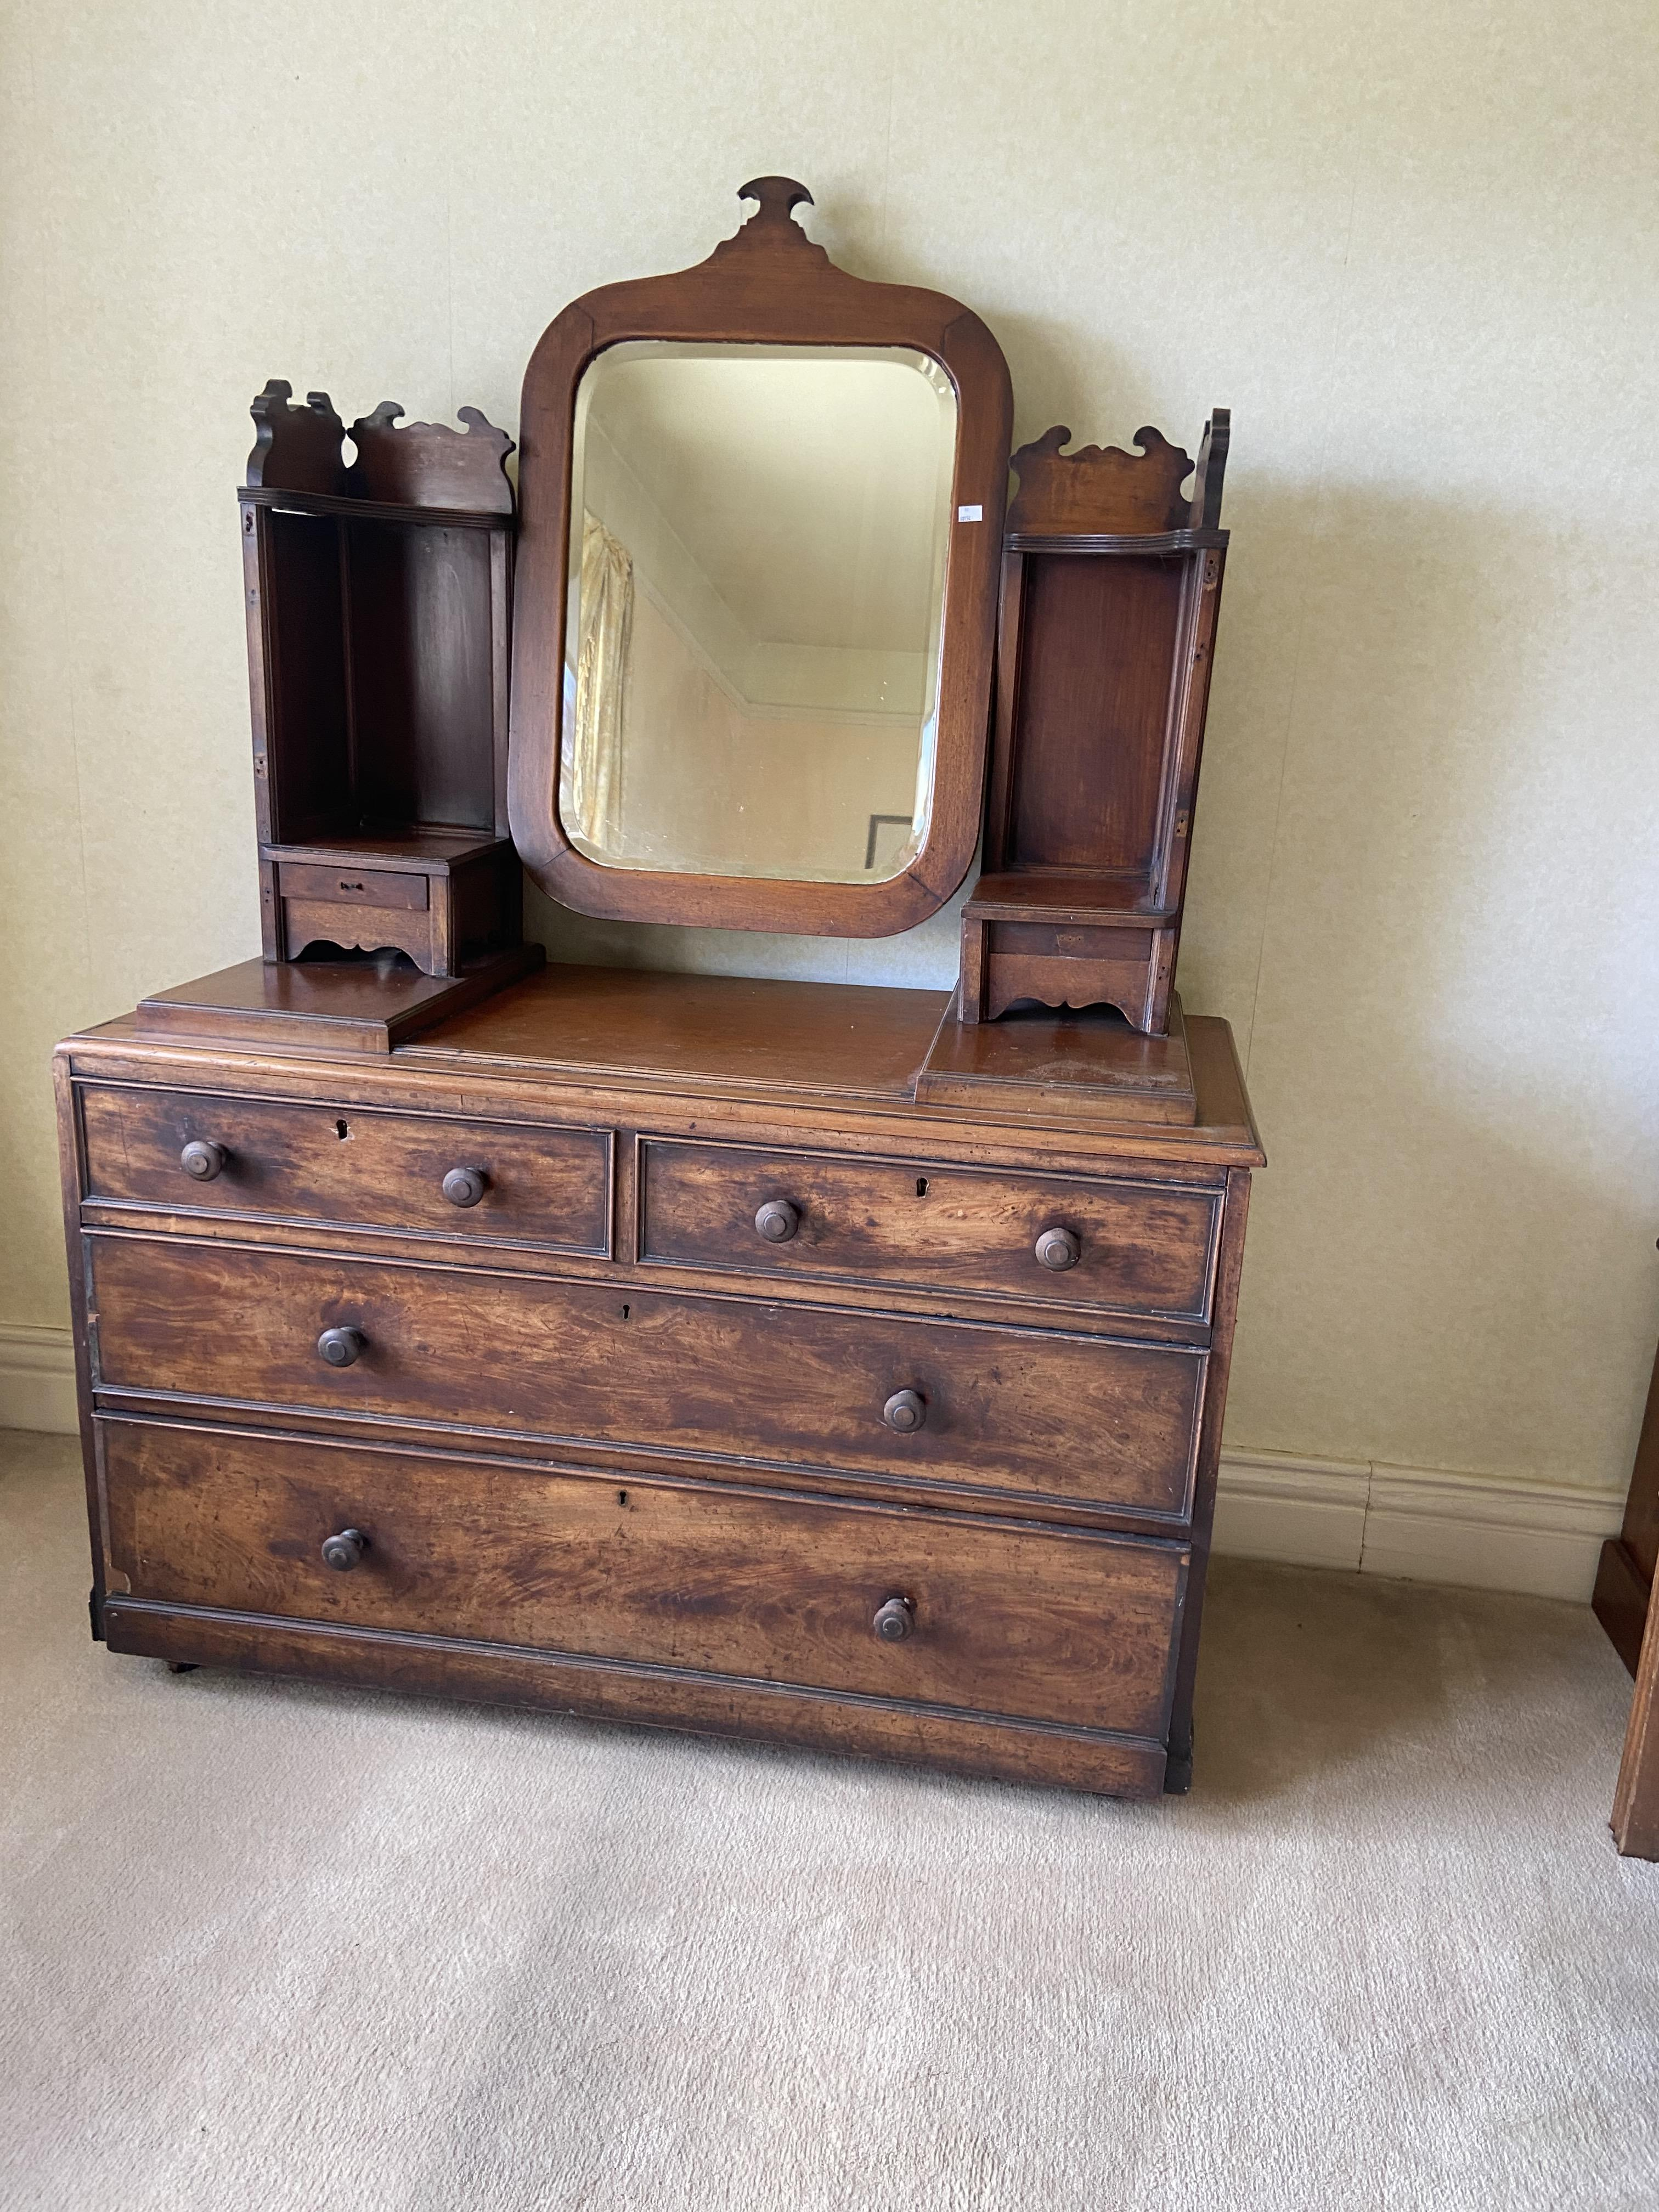 A 19th Century mahogany four drawer Chest, adopted, now with swing frame mirror and two brackets,